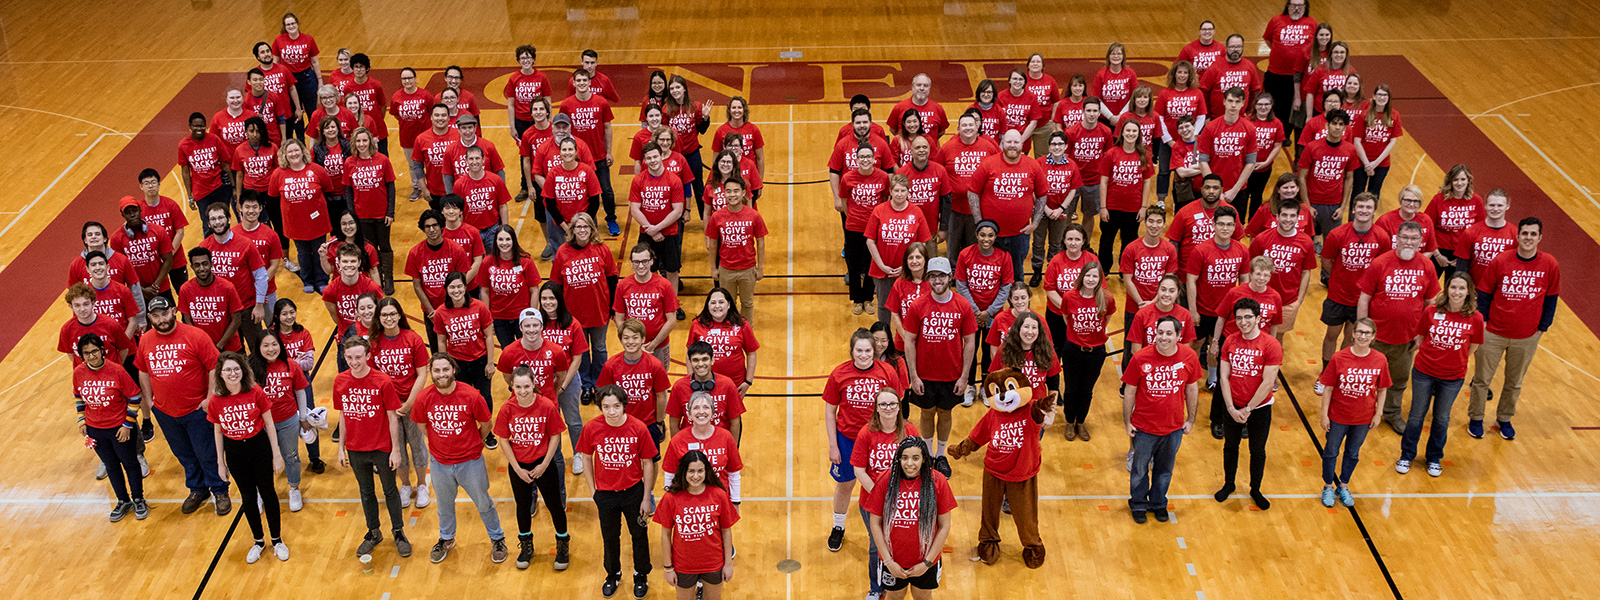 Approximately 200 students, faculty, and staff joined in creating a Human Laurel Leaf at Darby Gym in celebration of the fifth annual Scarlet & Give Back Day.